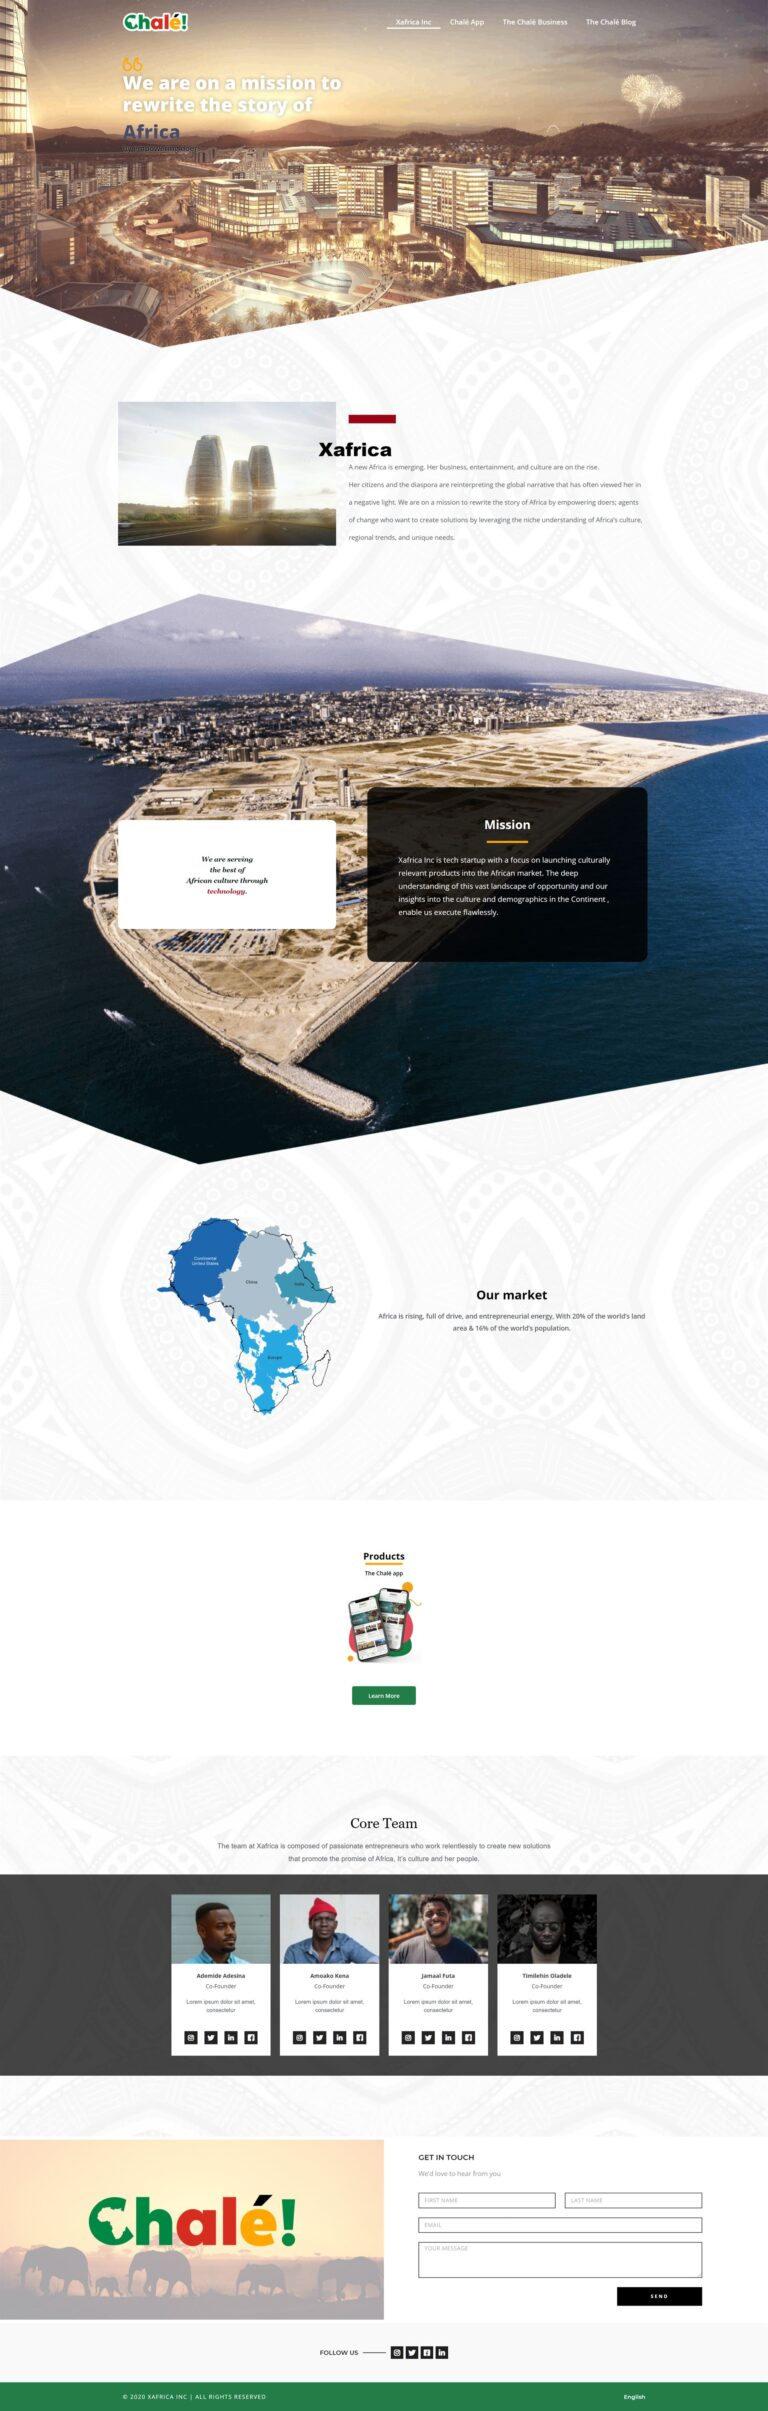 The Chale App Website Design HomePage